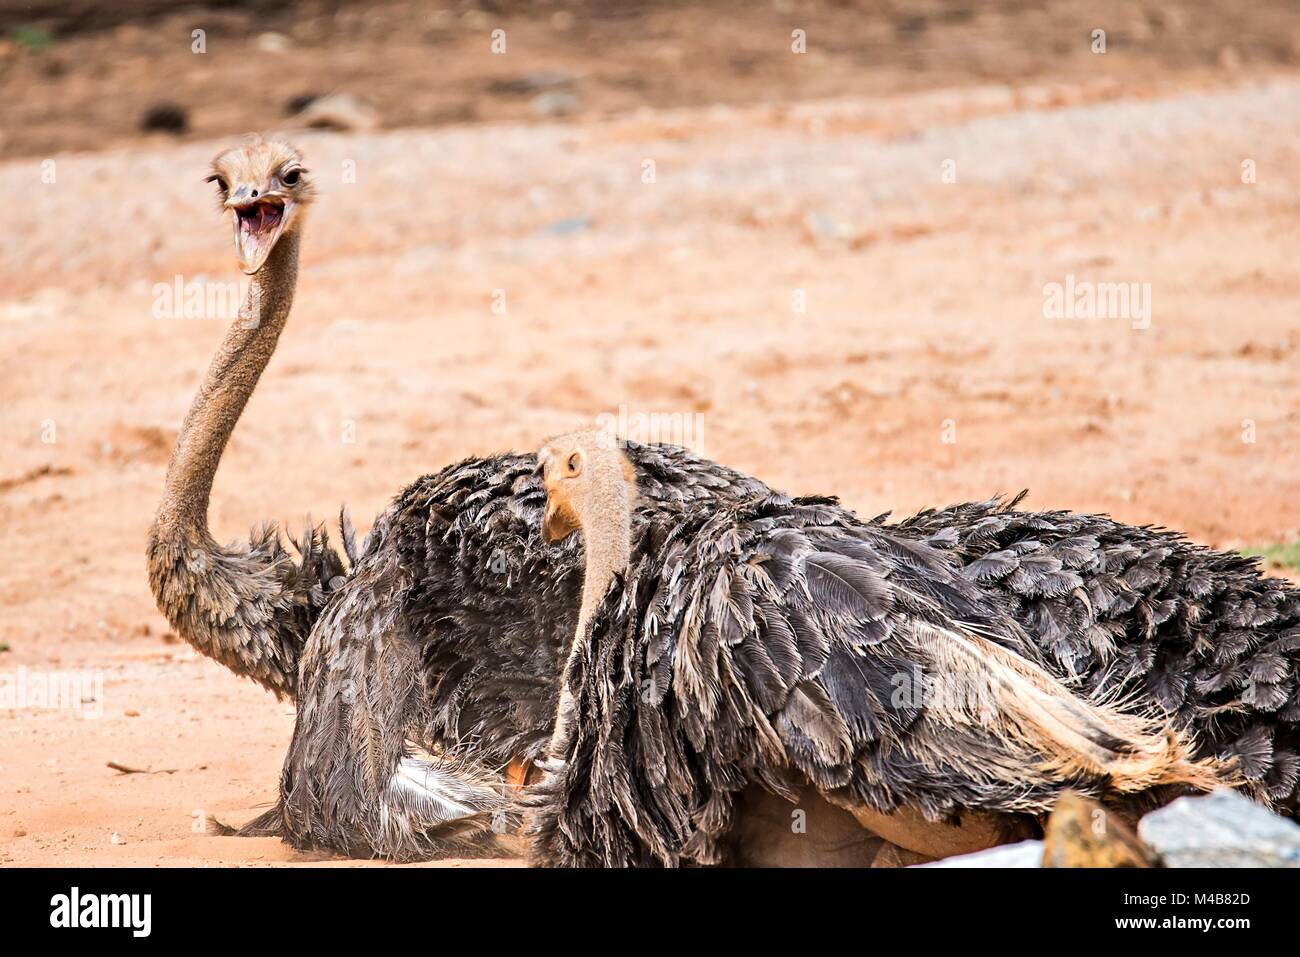 Struthio camelus The ostrich is the world's largest bird species - Stock Image